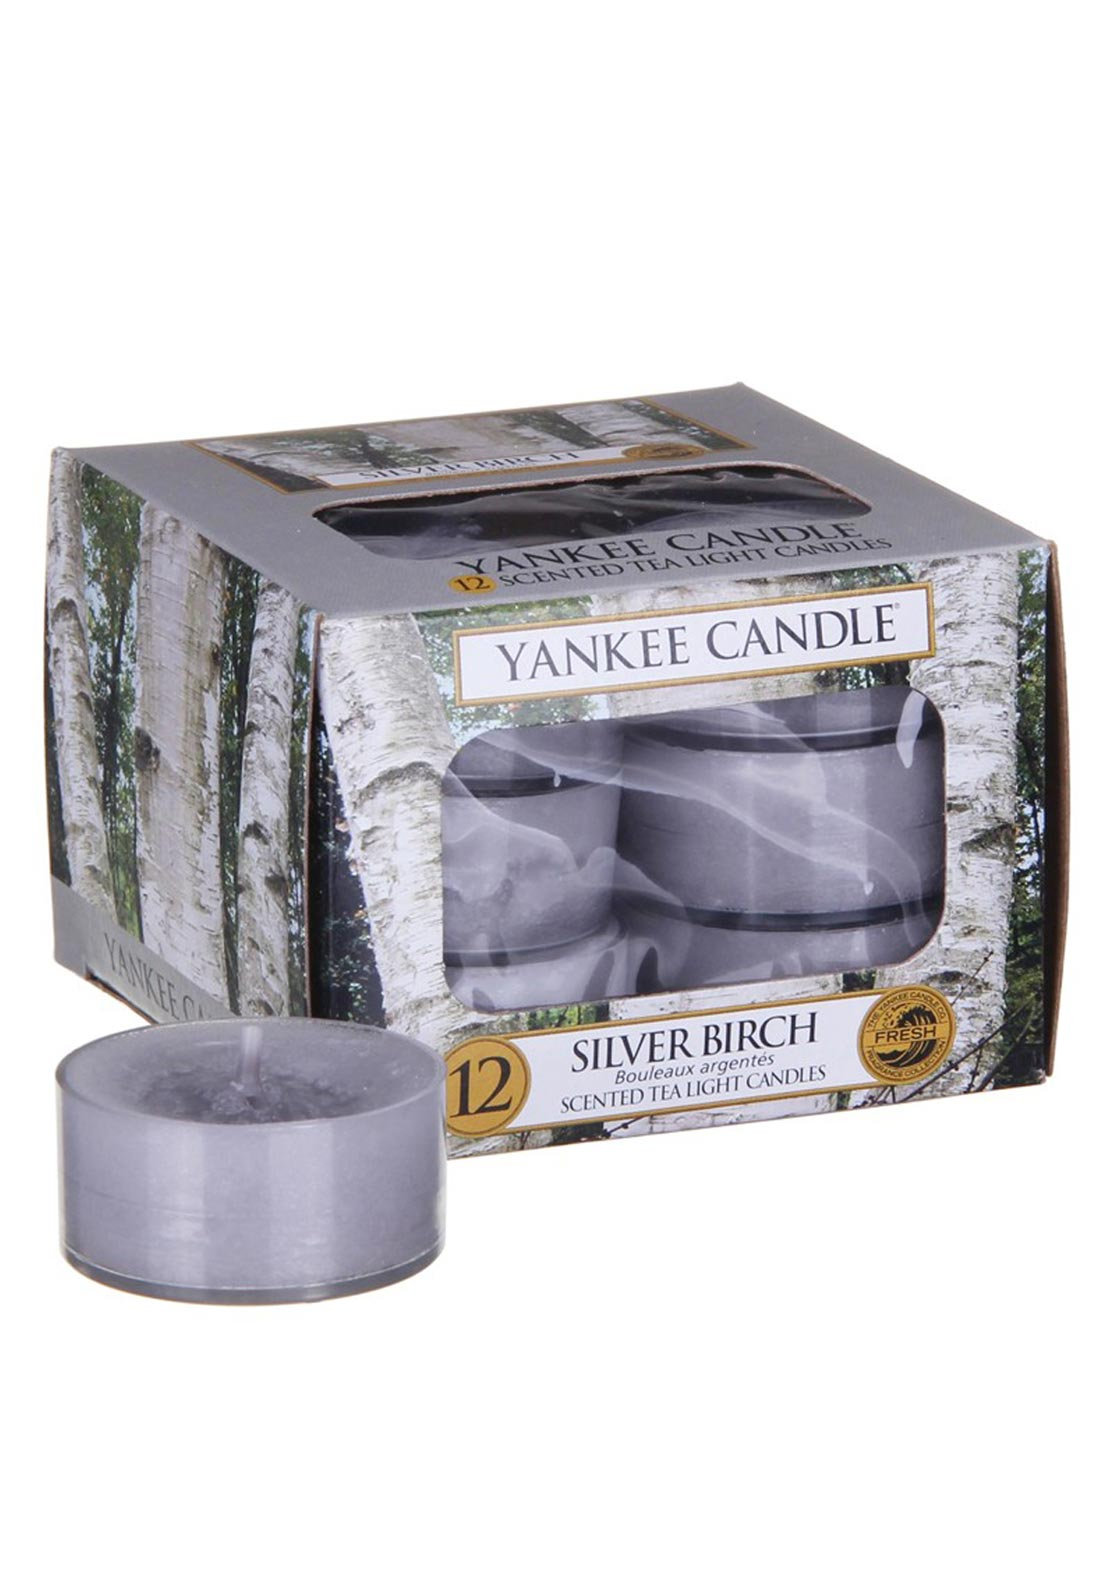 Yankee Candle 12 Scented Tea Light Candles, Silver Birch